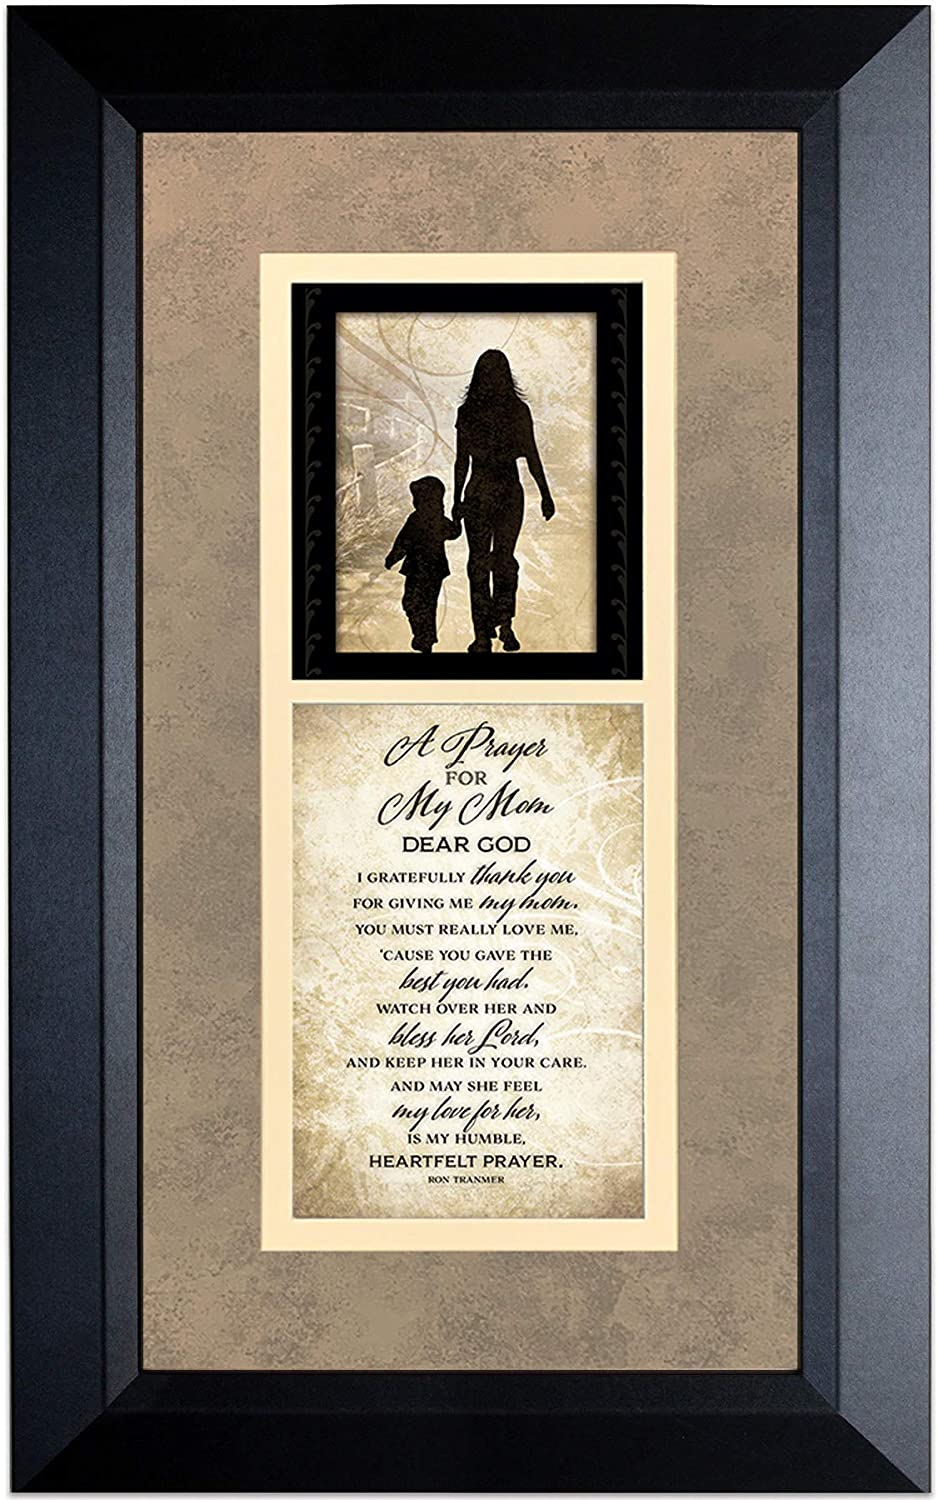 A Prayer for My Mom Wood Wall Art Frame Plaque   11 inches x 18 inches   Hanger for Hanging   Dear God I Gratefully Thank You for Giving me My Mom James Lawrence